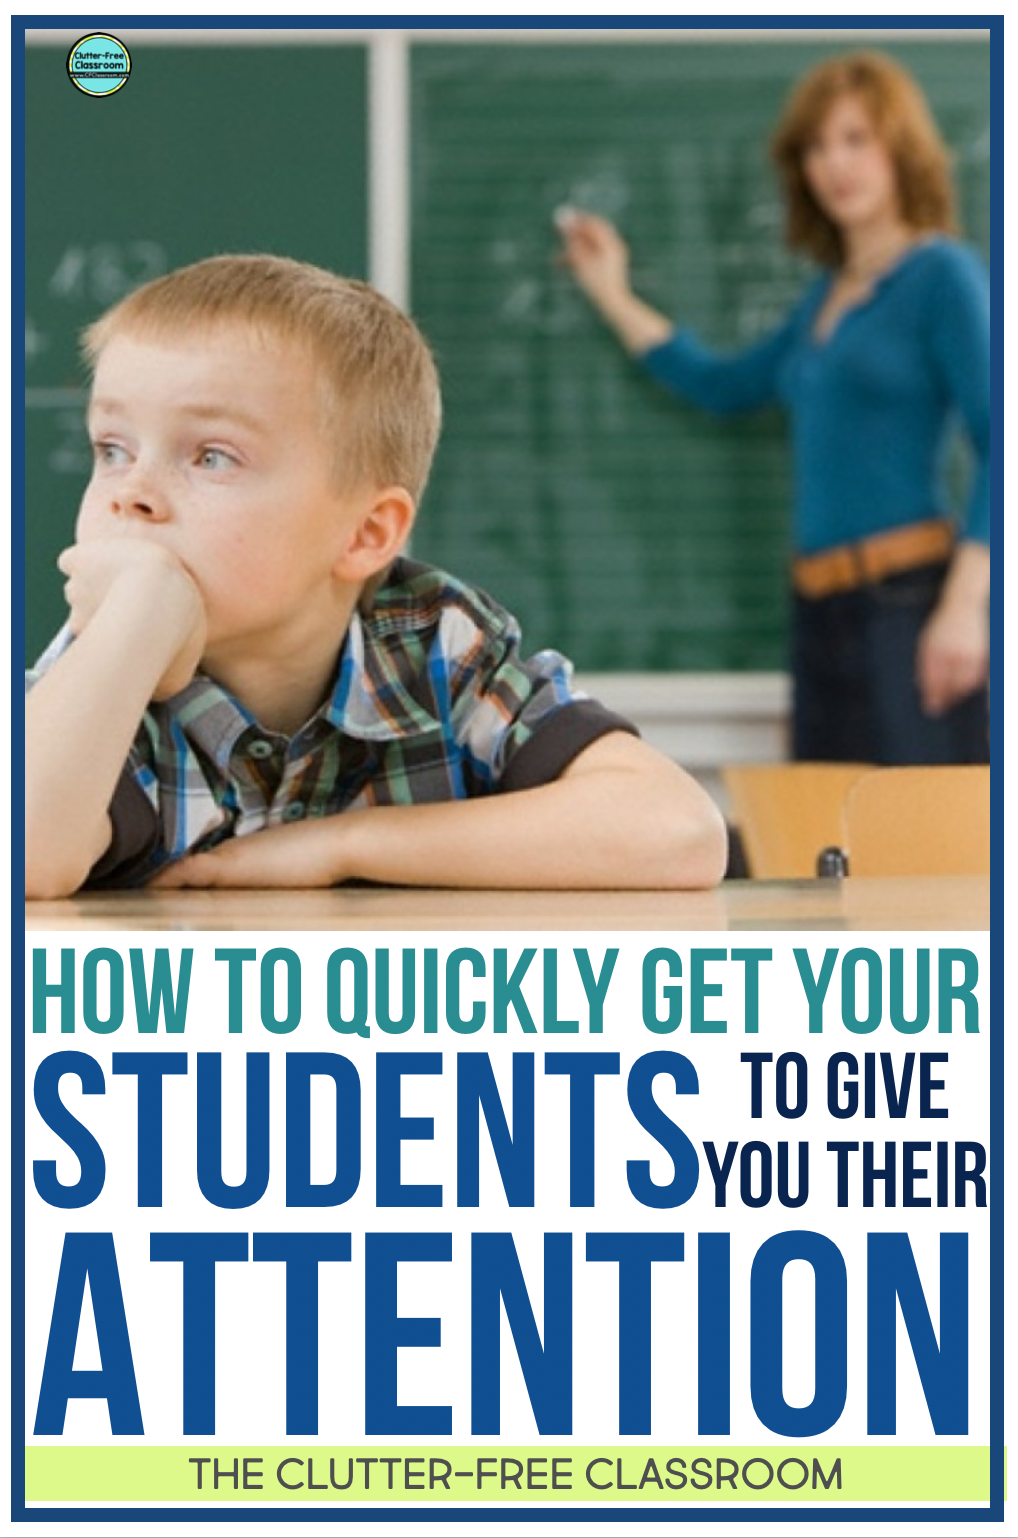 Every classroom needs attentions getters or grabbers to promote classroom management. These strategies could be catchy phrases or non verbal. Create an anchor chart for your kids so they remember the procedures and routines.